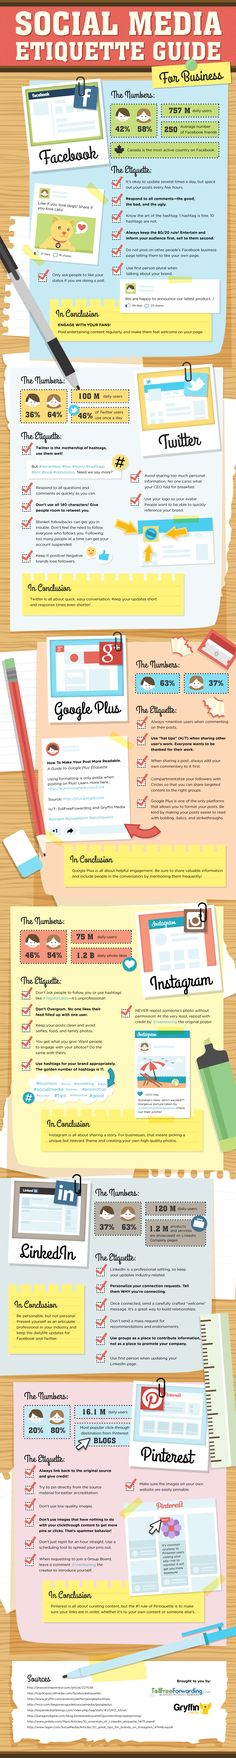 Social Media Etiquette Guide for Business [Infographic] When you add the global reach of social media, bad manners and bad behaviour gets amplified. Here is the social media etiquette for 6 social media networks. Social Marketing, Marketing Digital, Marketing Trends, Marketing Online, Content Marketing, Internet Marketing, Business Marketing, Mobile Marketing, Marketing Strategies